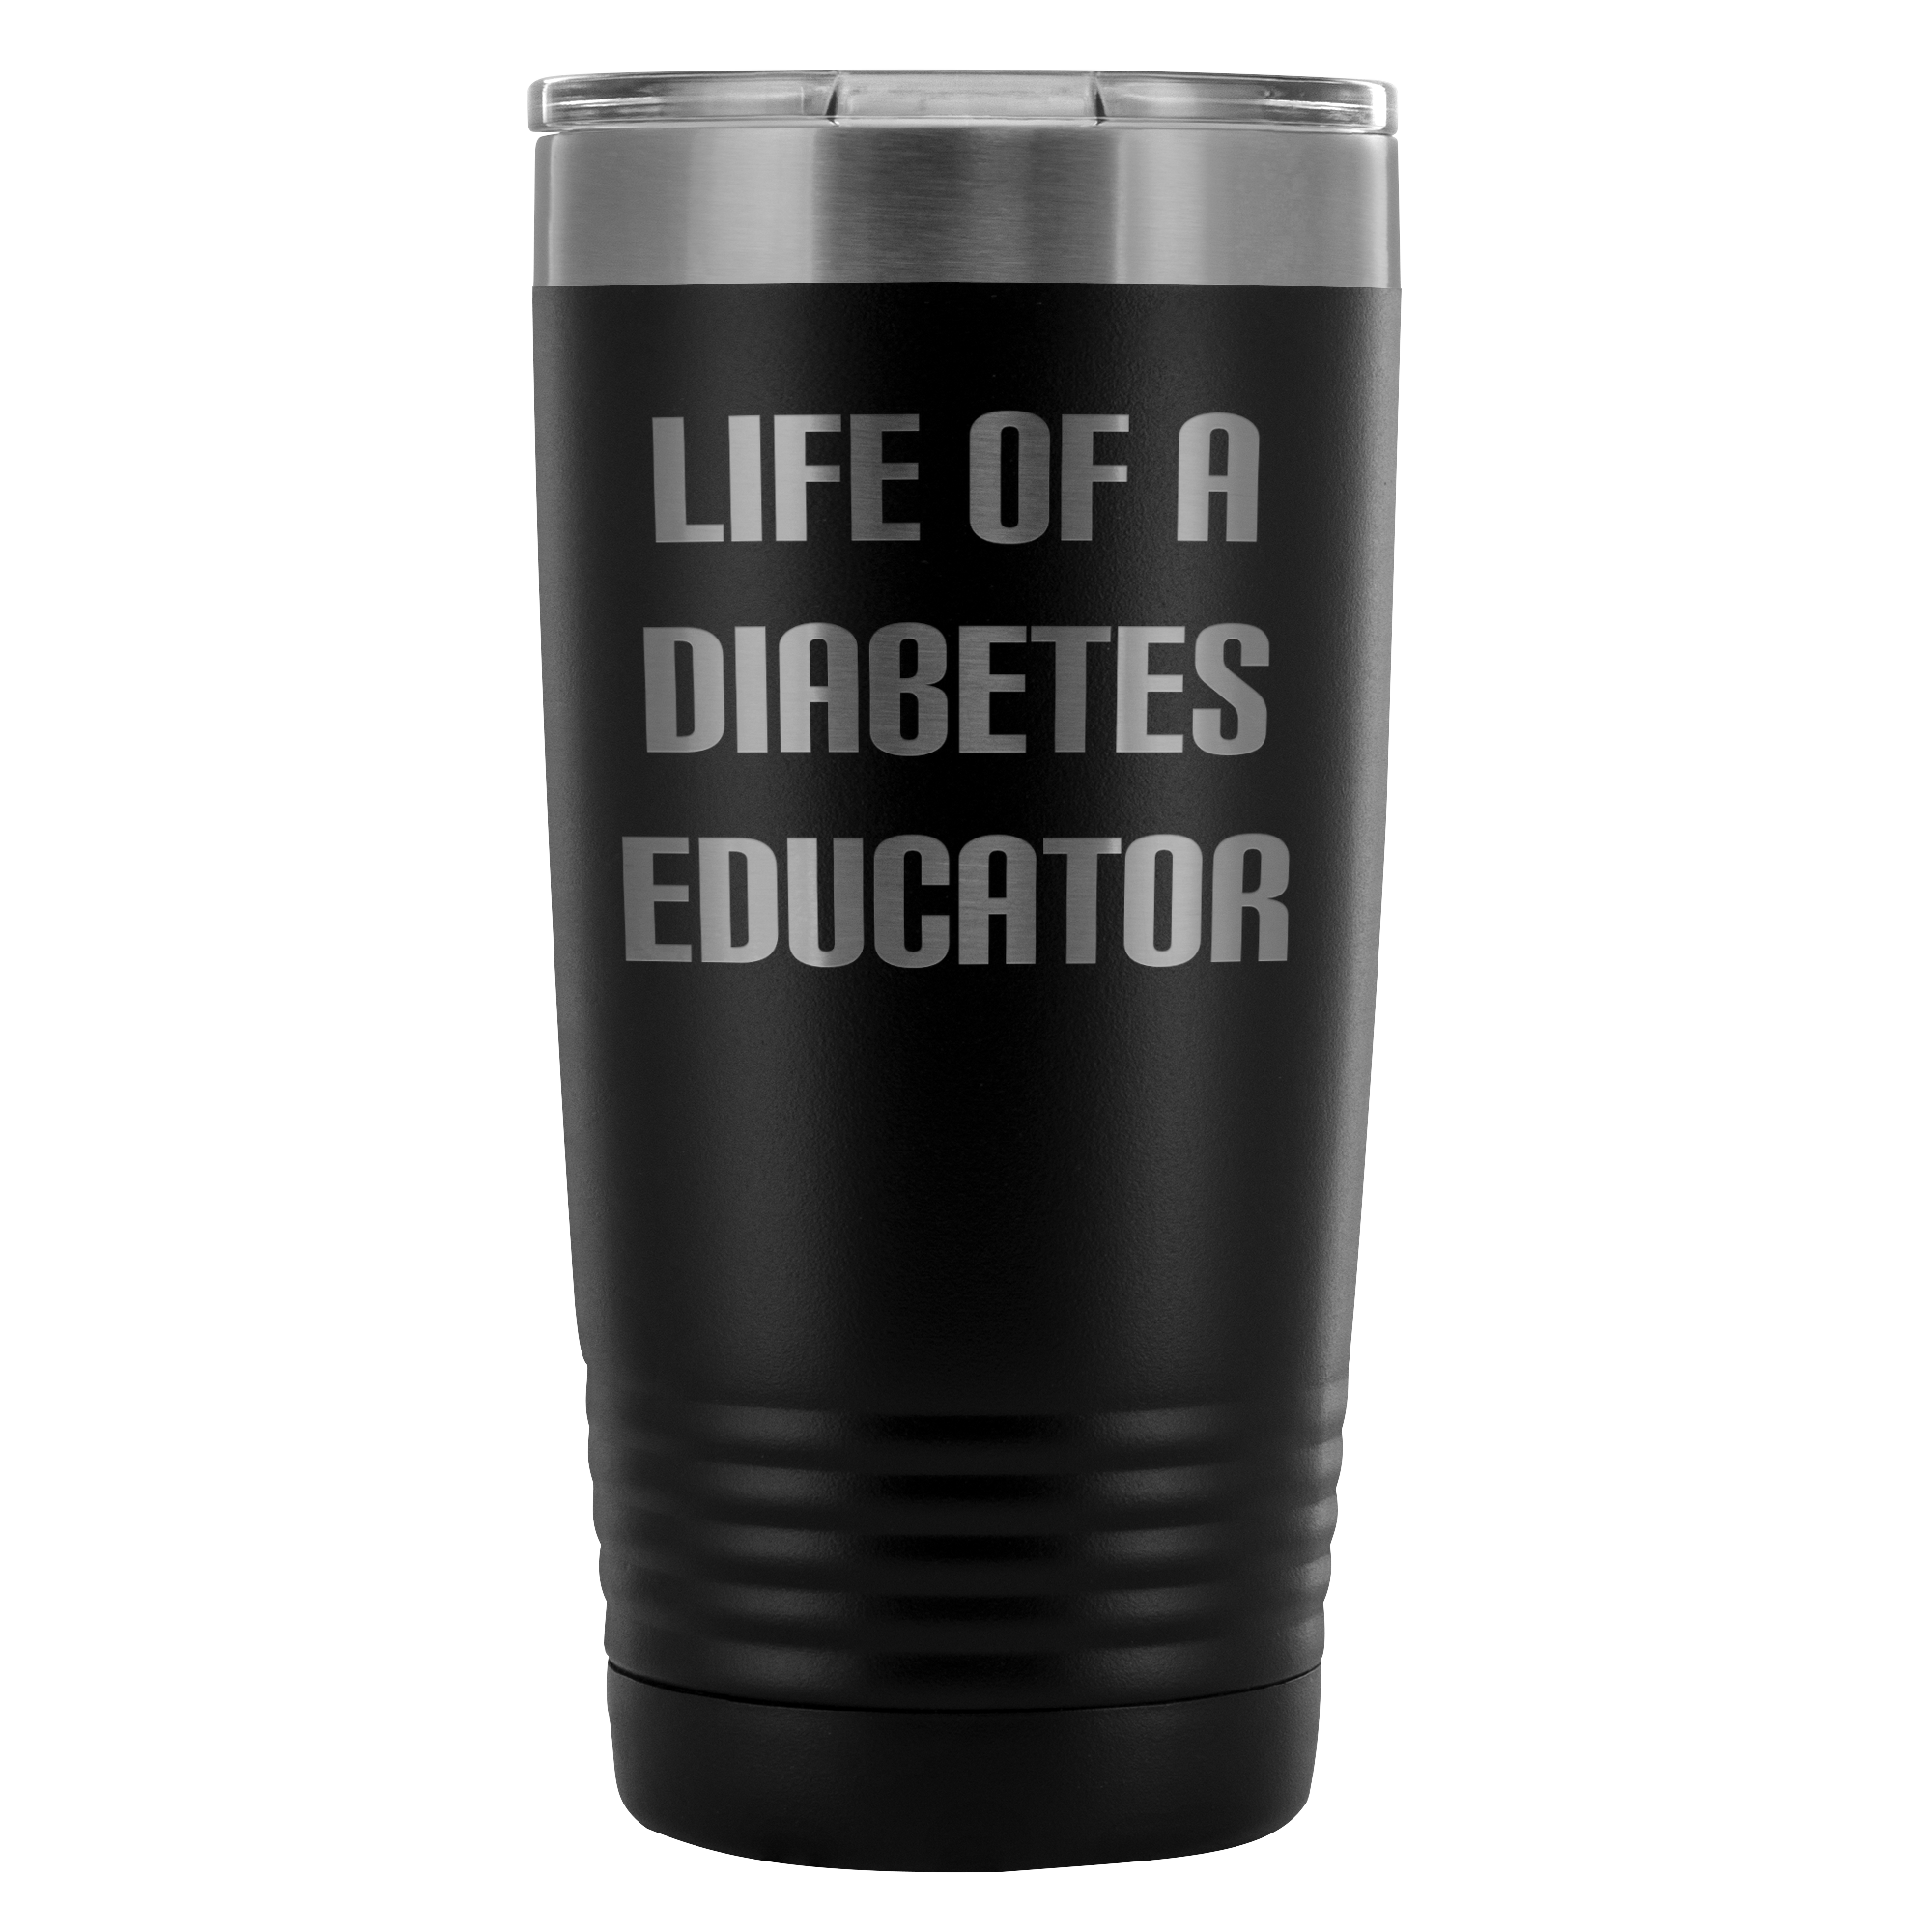 Life of a Diabetes Educator - 20 oz Tumbler - TL